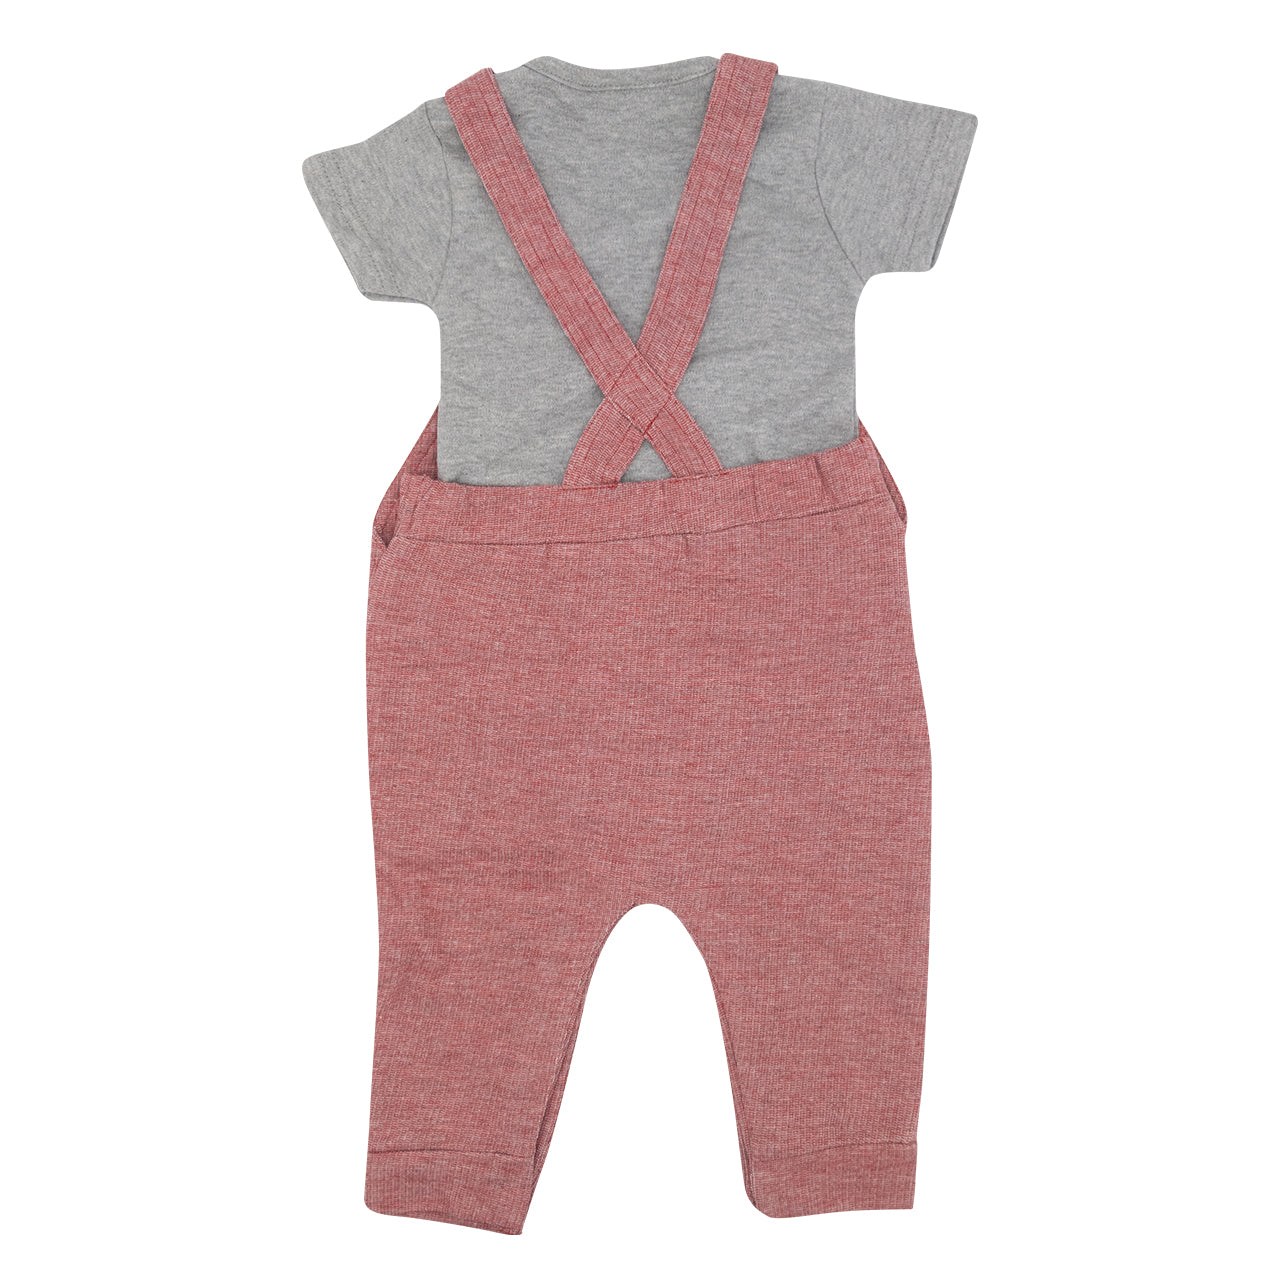 NFFC Tommy Baby Dungaree Set